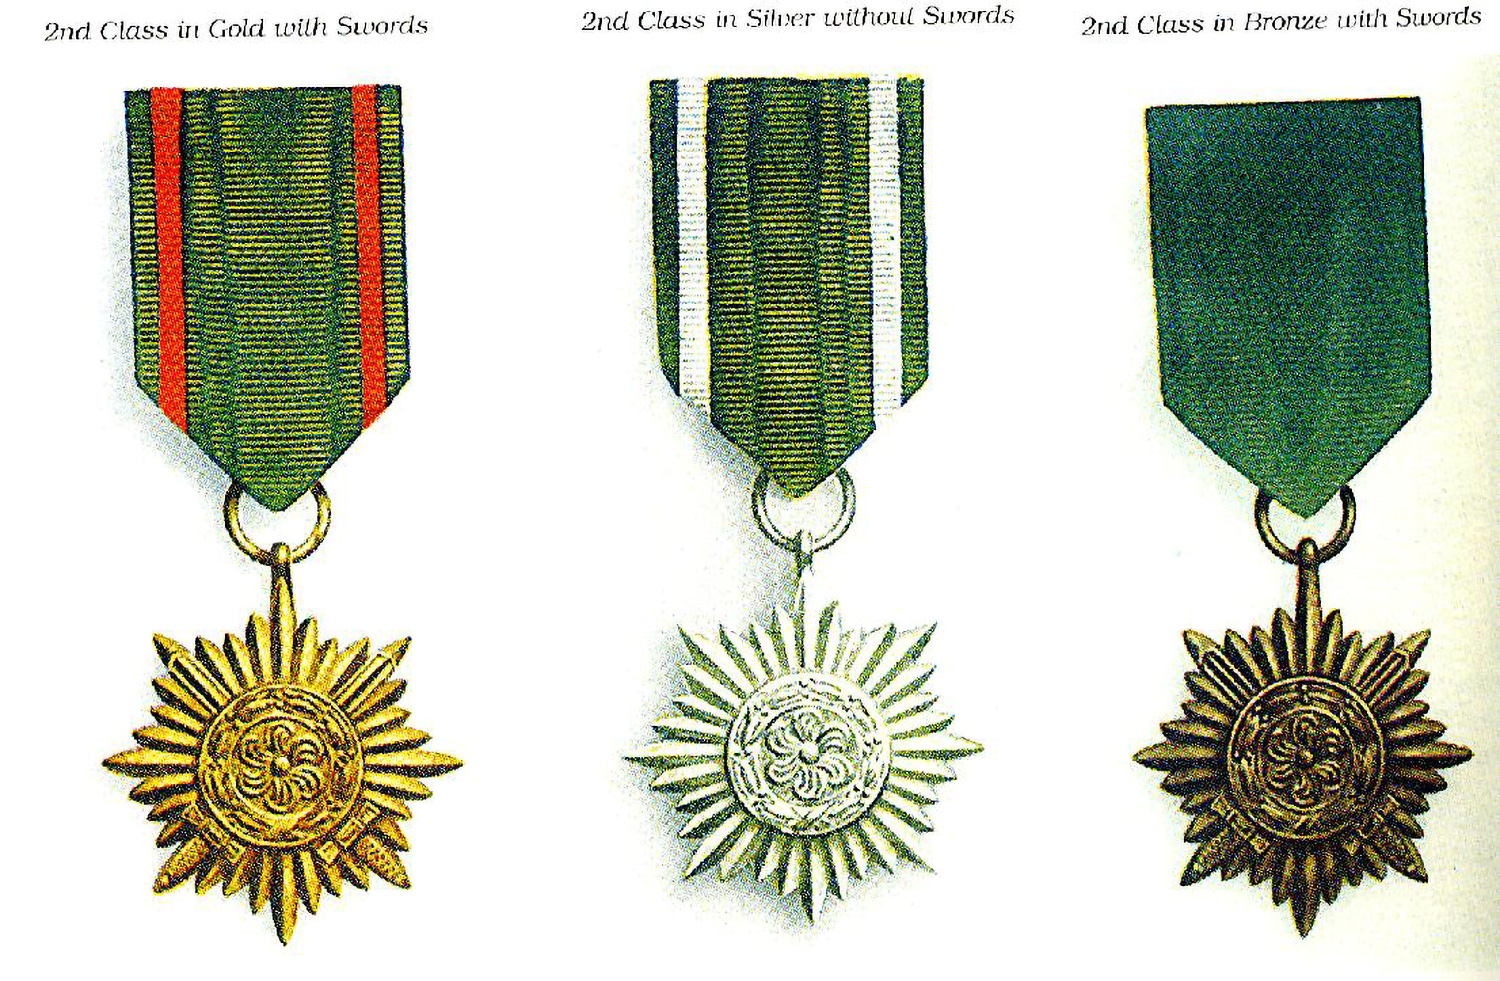 The three 2nd Class awards